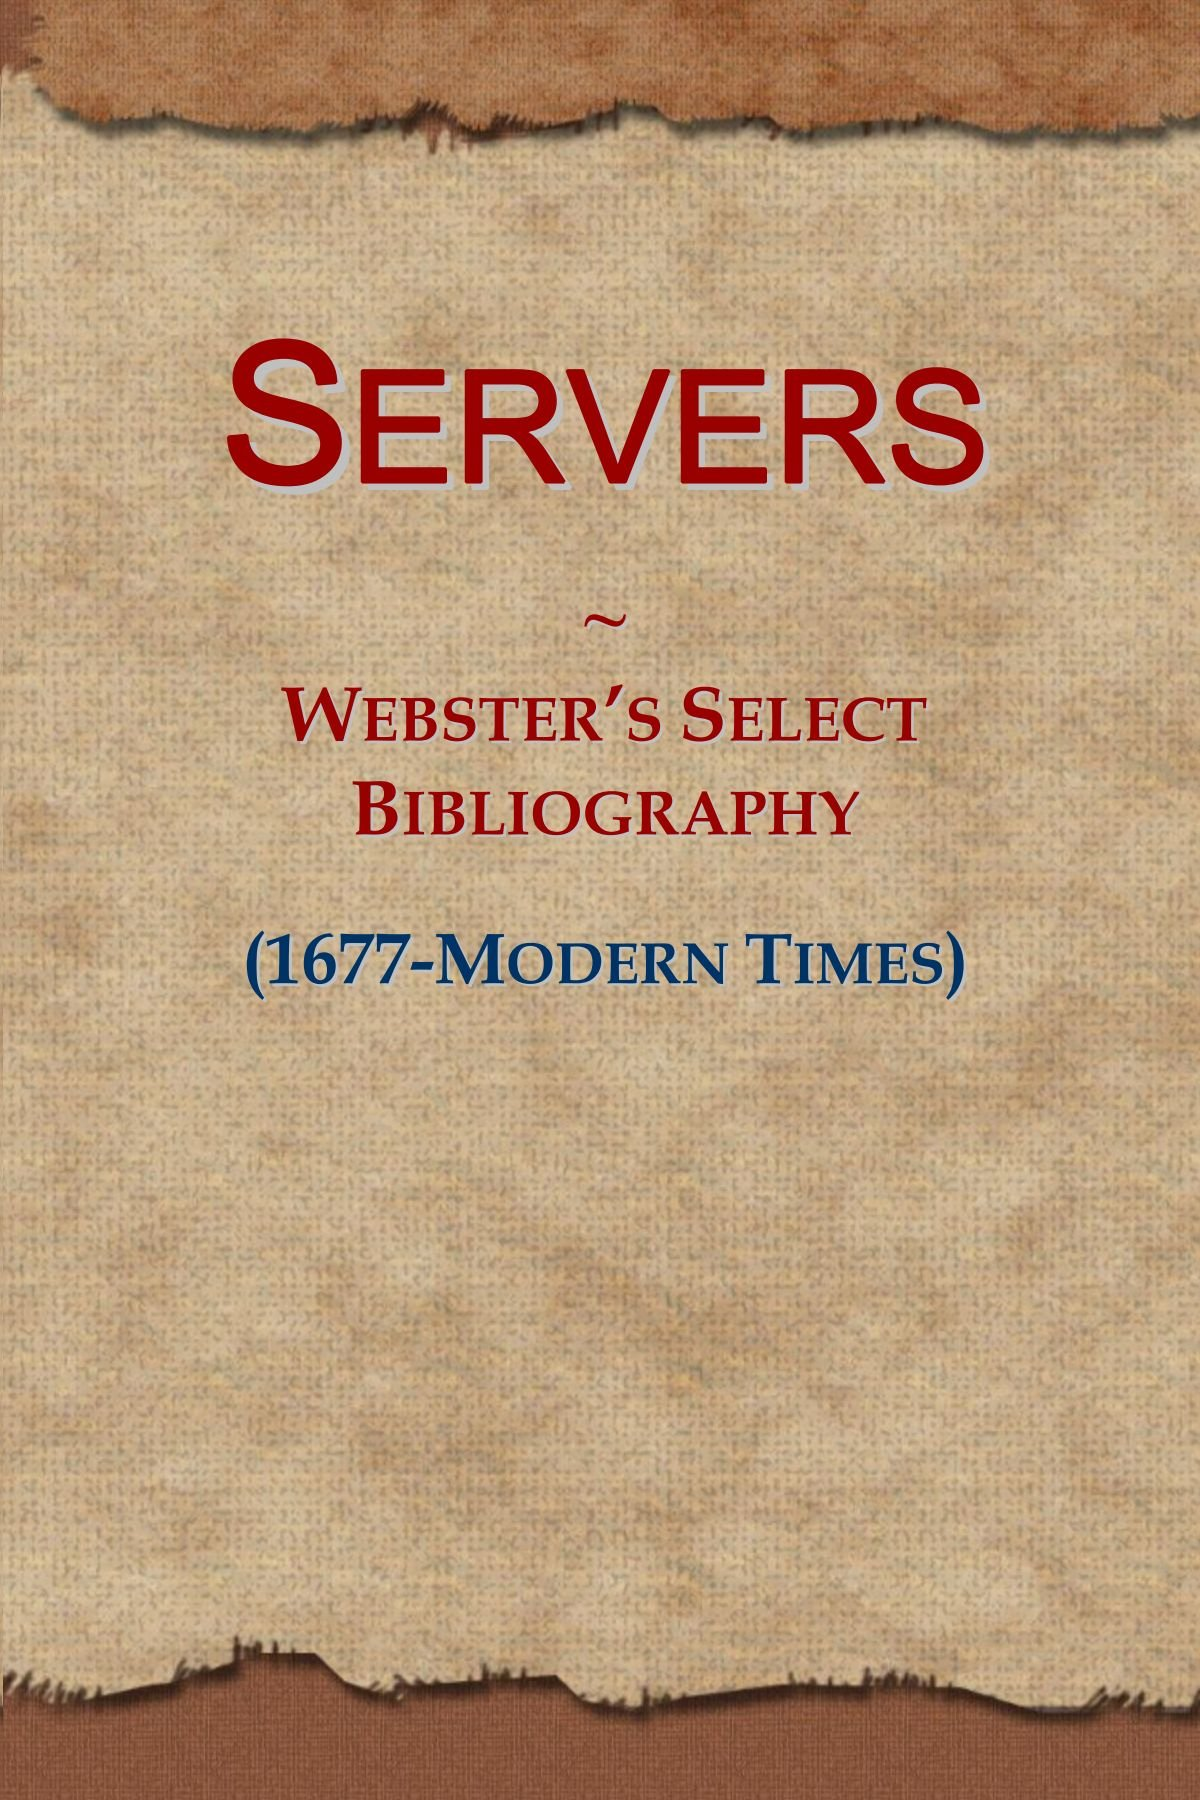 Servers: Webster's Select Bibliography (1677-Modern Times)